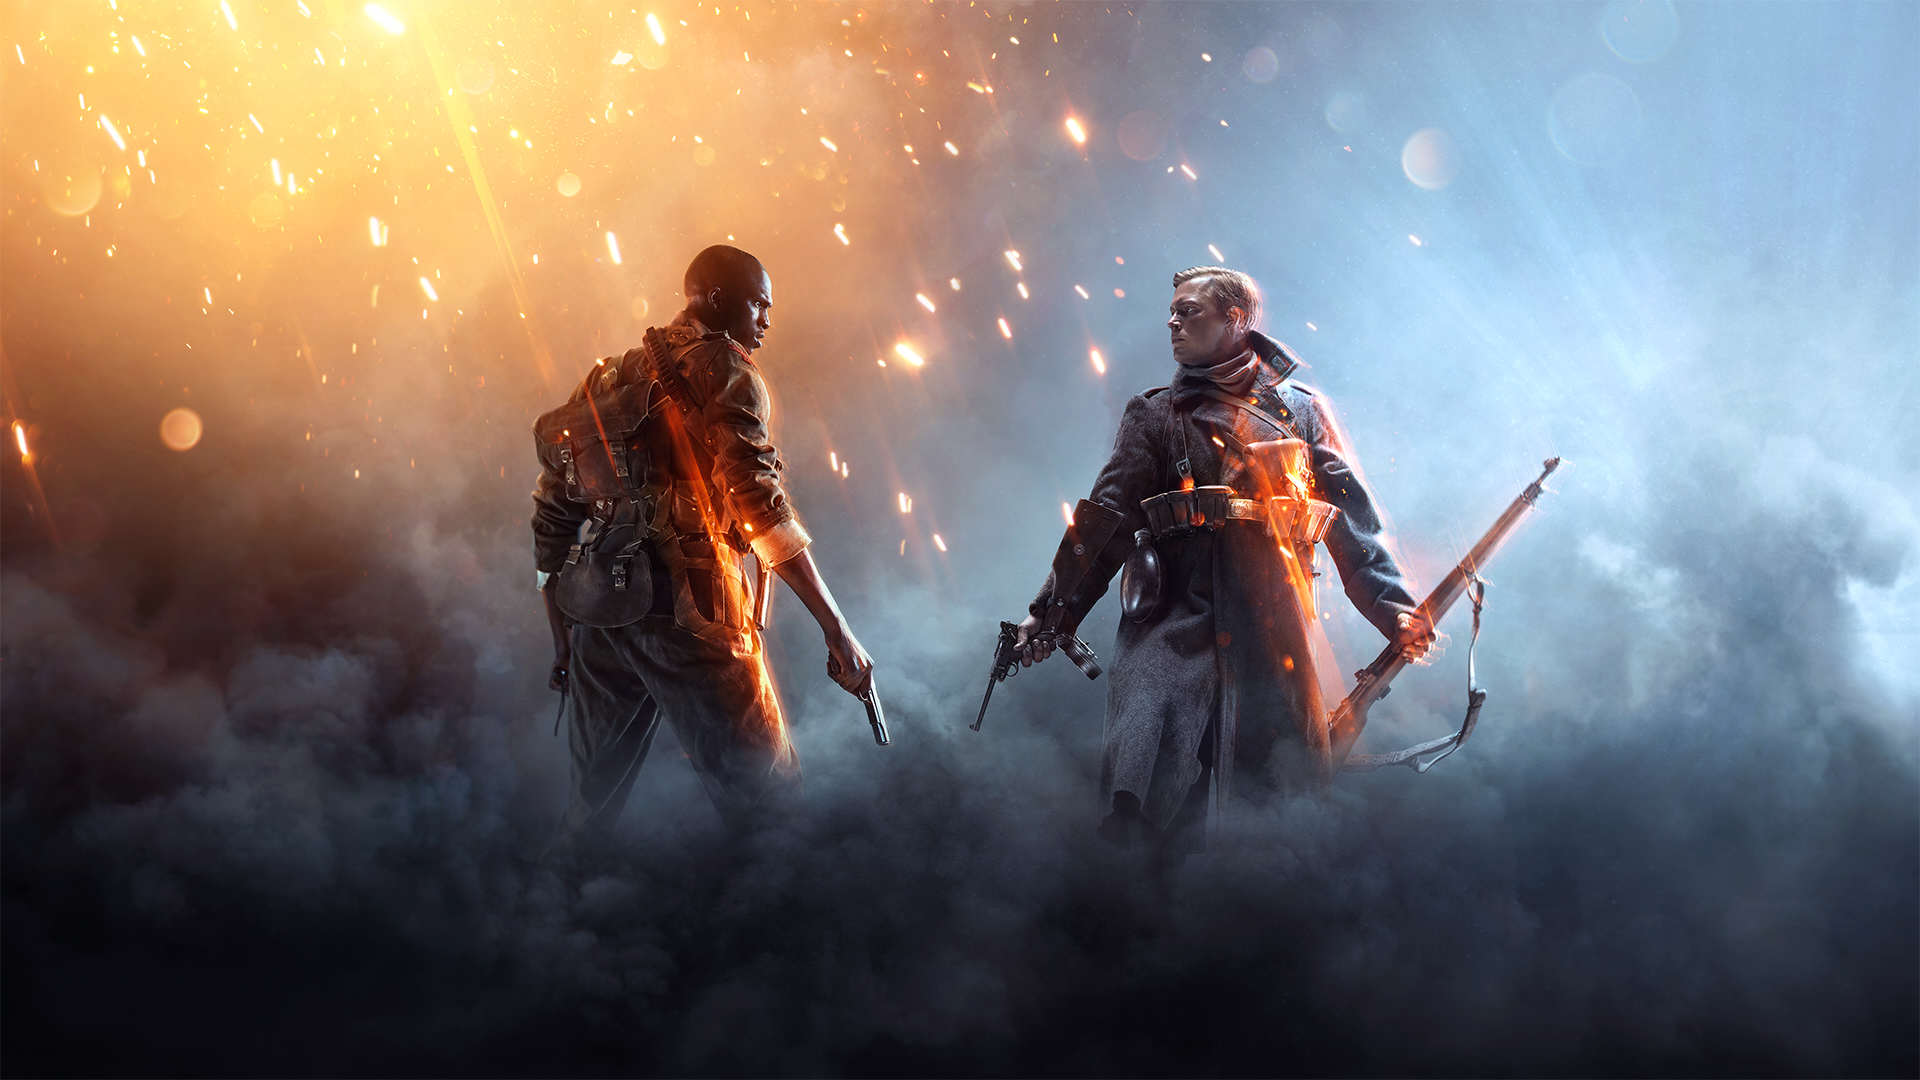 Battlefield TV Show In The Works, Heres What We Know rendition1.img  2